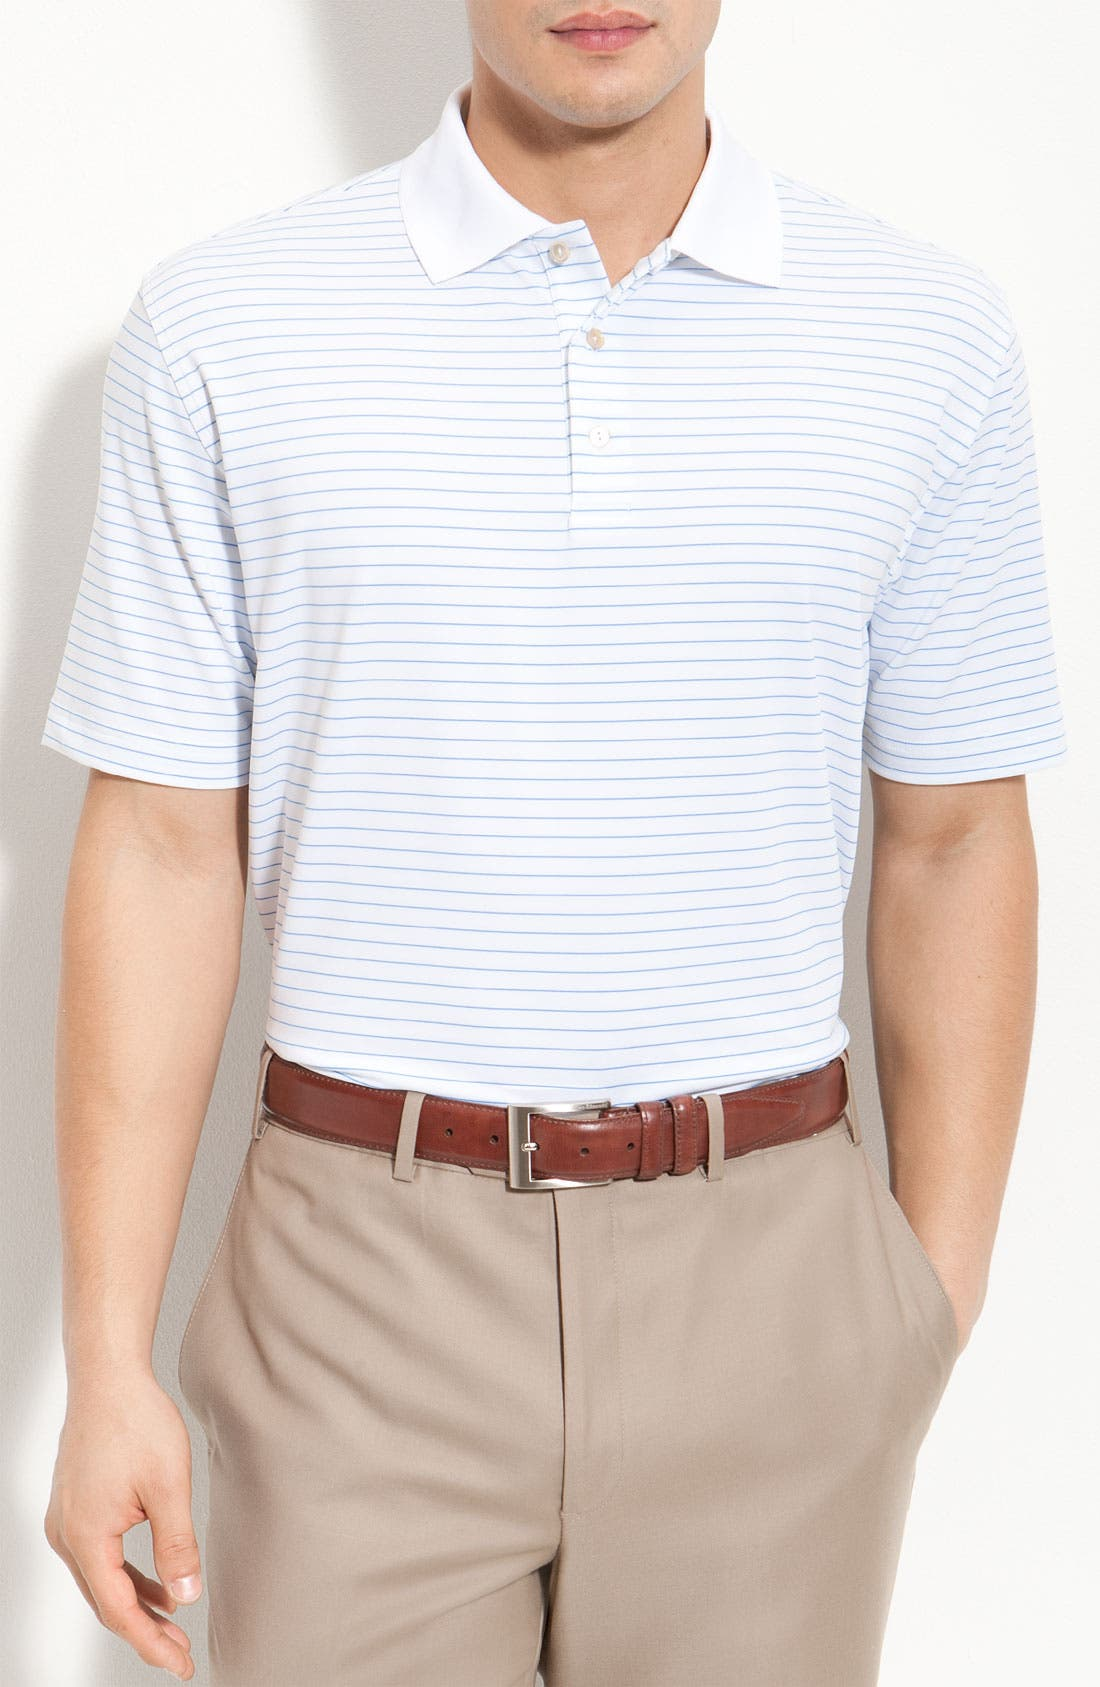 Alternate Image 1 Selected - Peter Millar 'Single Stripe Lisle' Polo